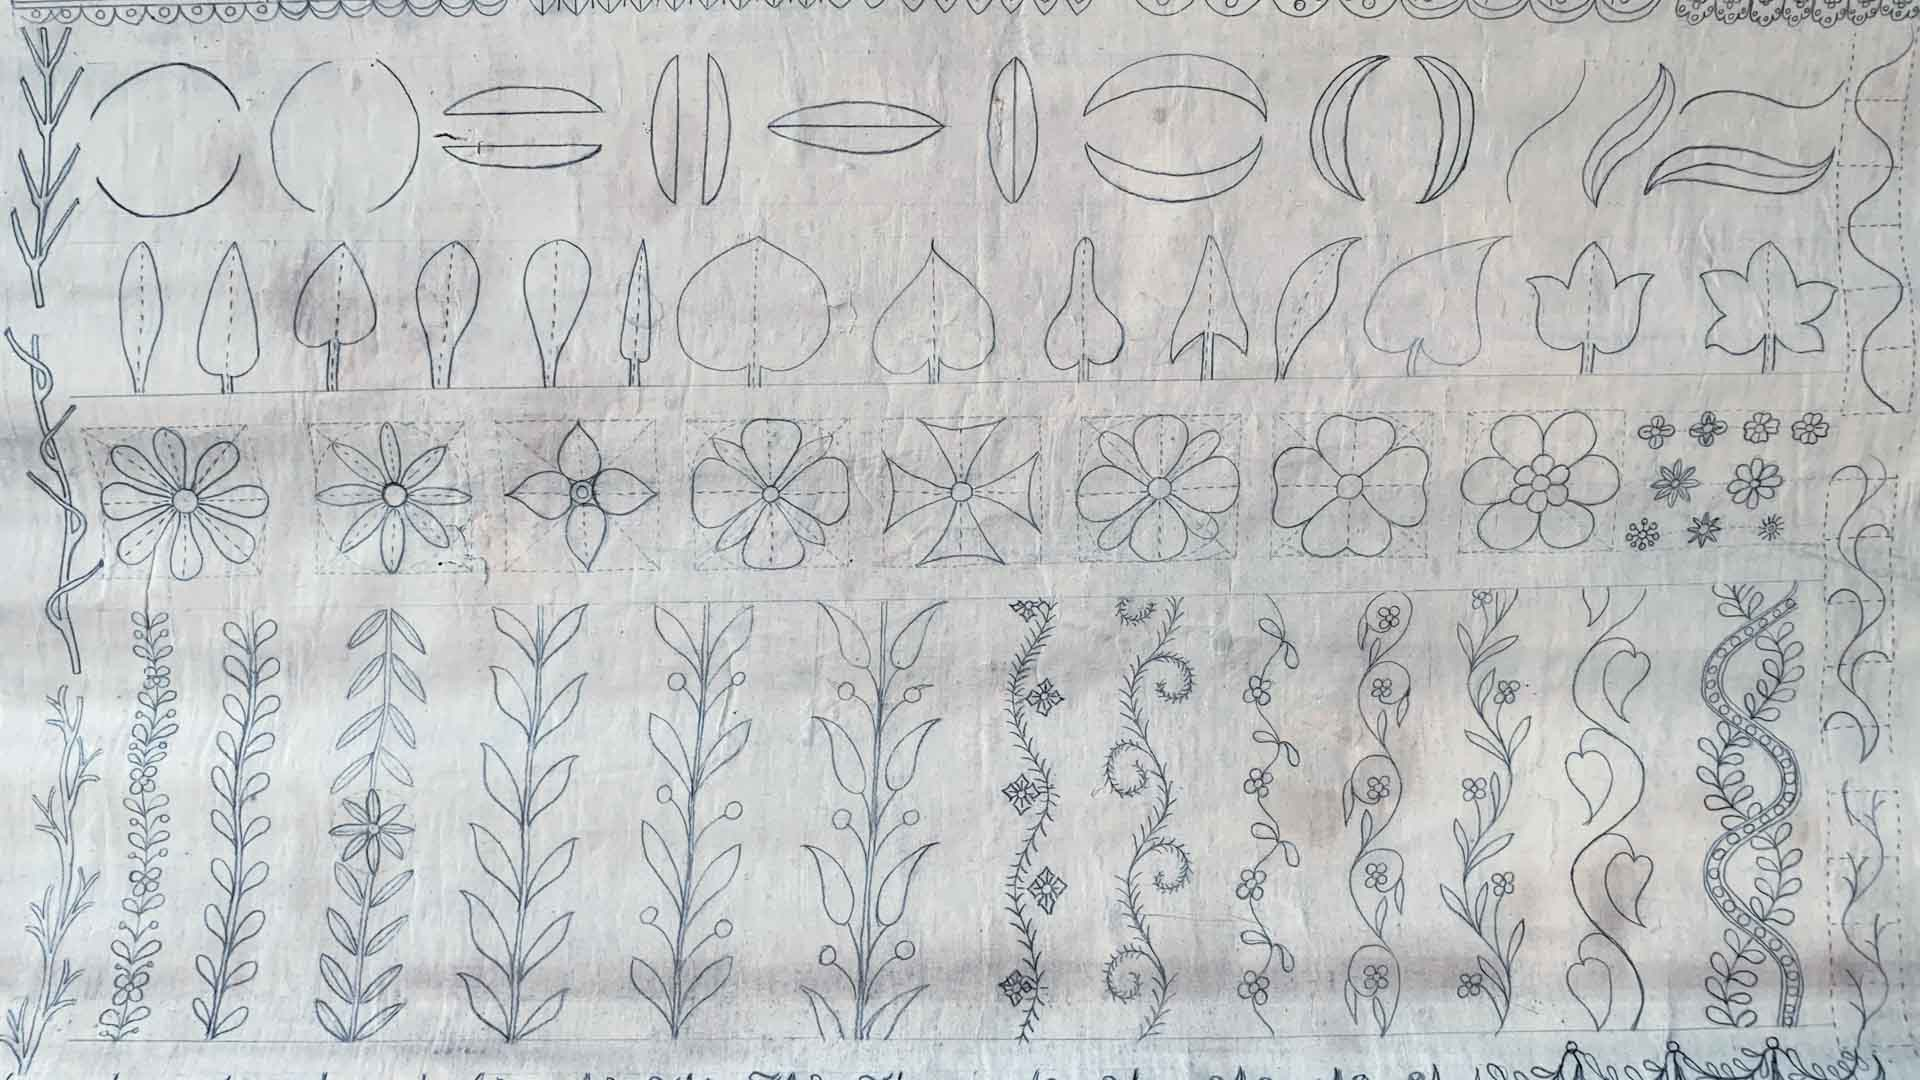 1890, Embellishments and Ornaments, School blackboard for drawing exercises © Ströter-Bender Collection